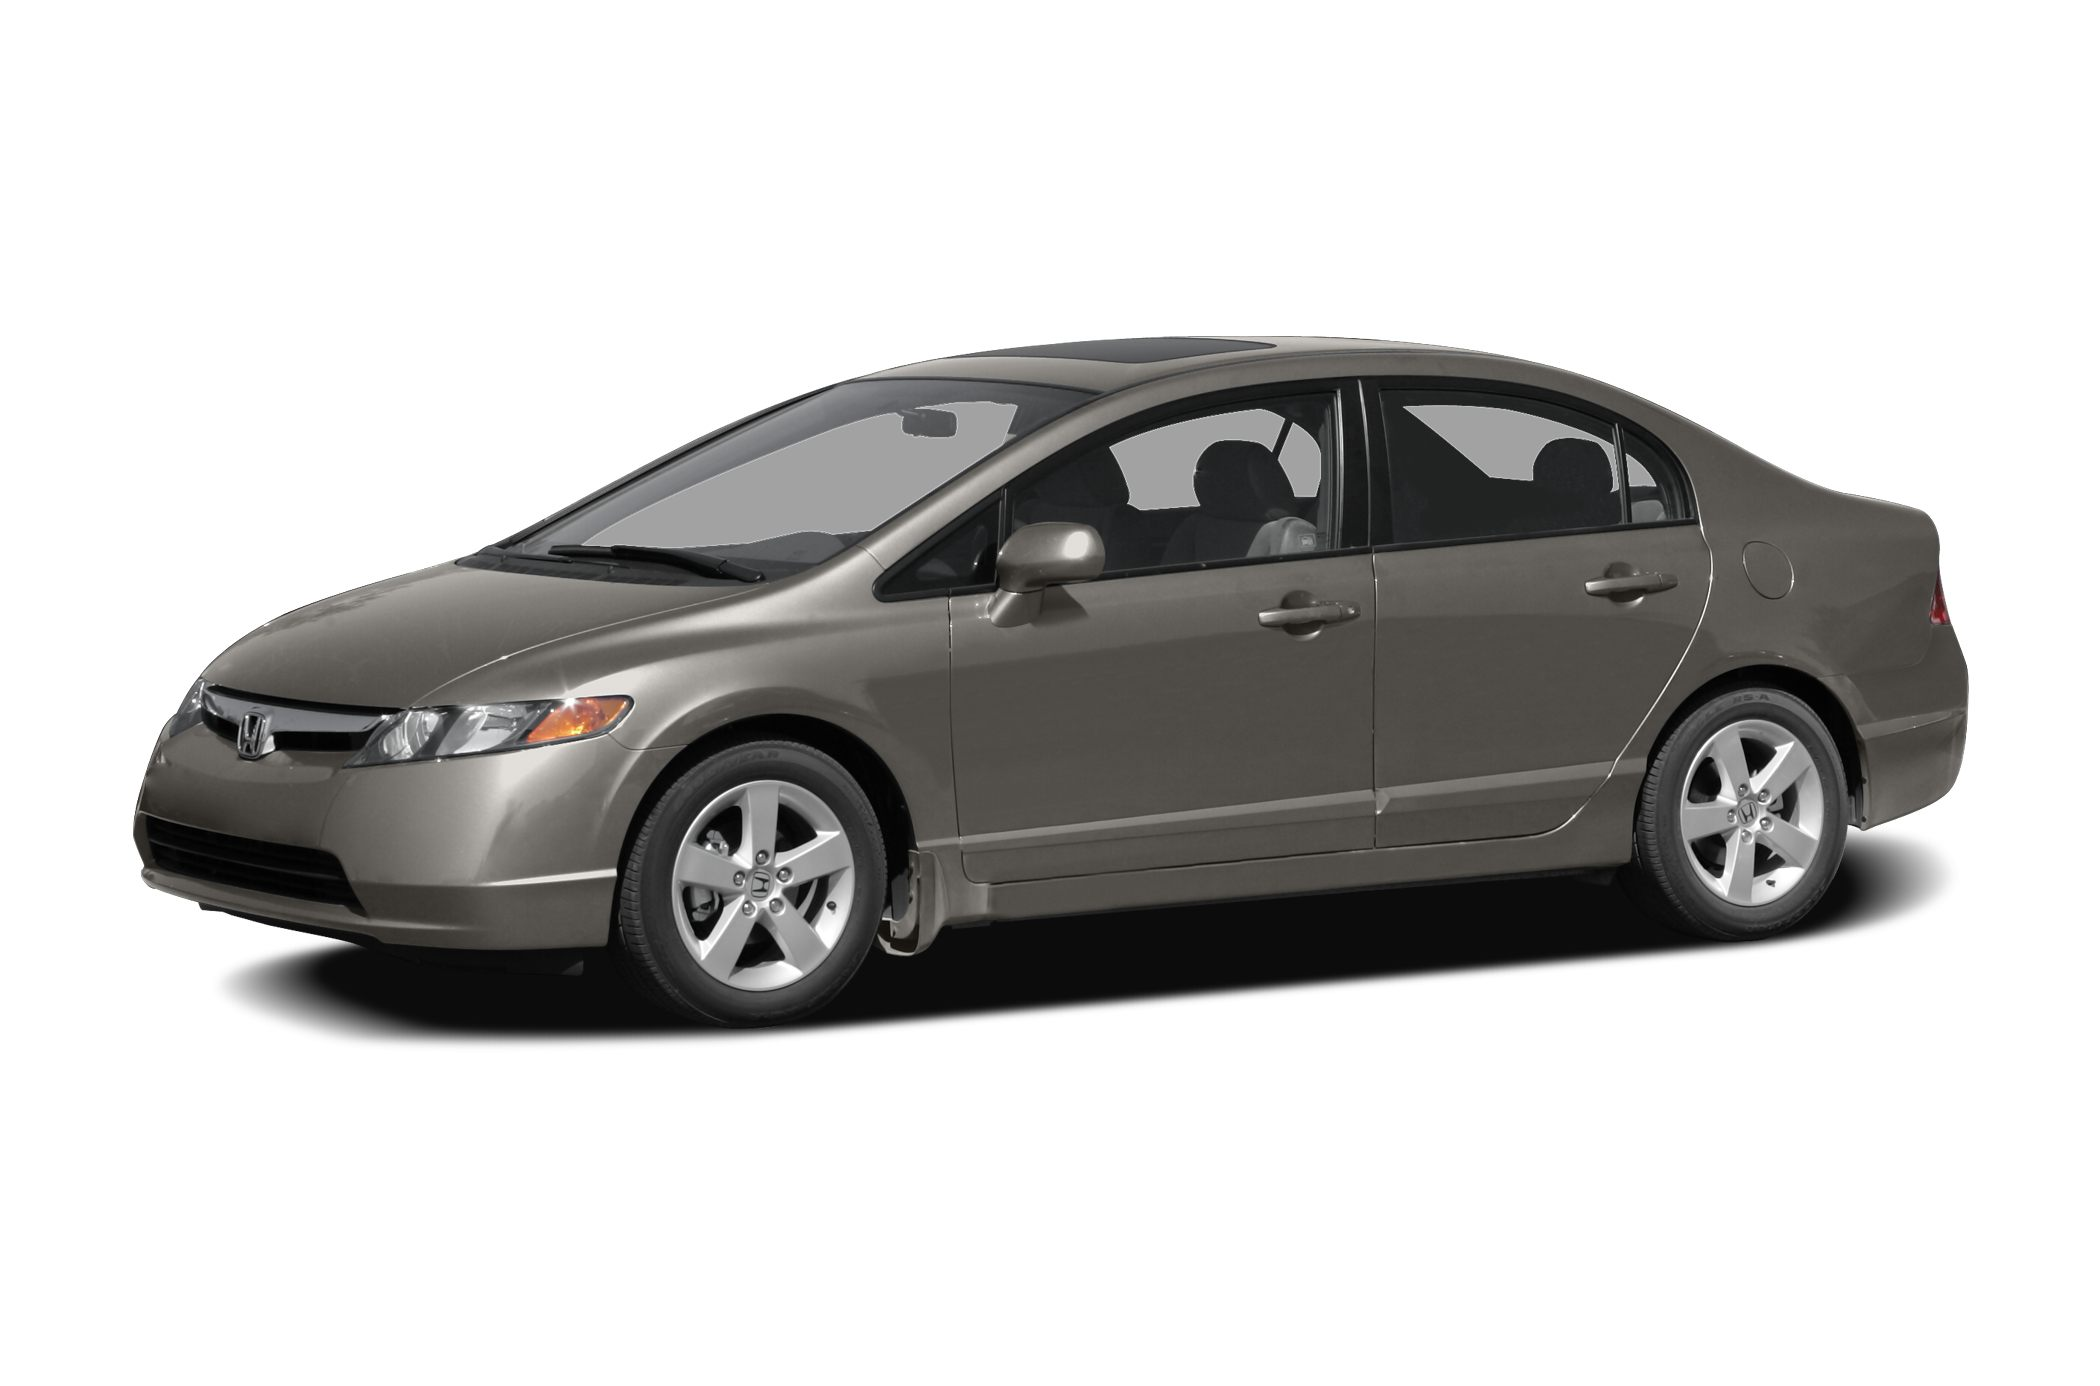 2007 Honda Civic EX Sedan for sale in Wilmington for $0 with 125,425 miles